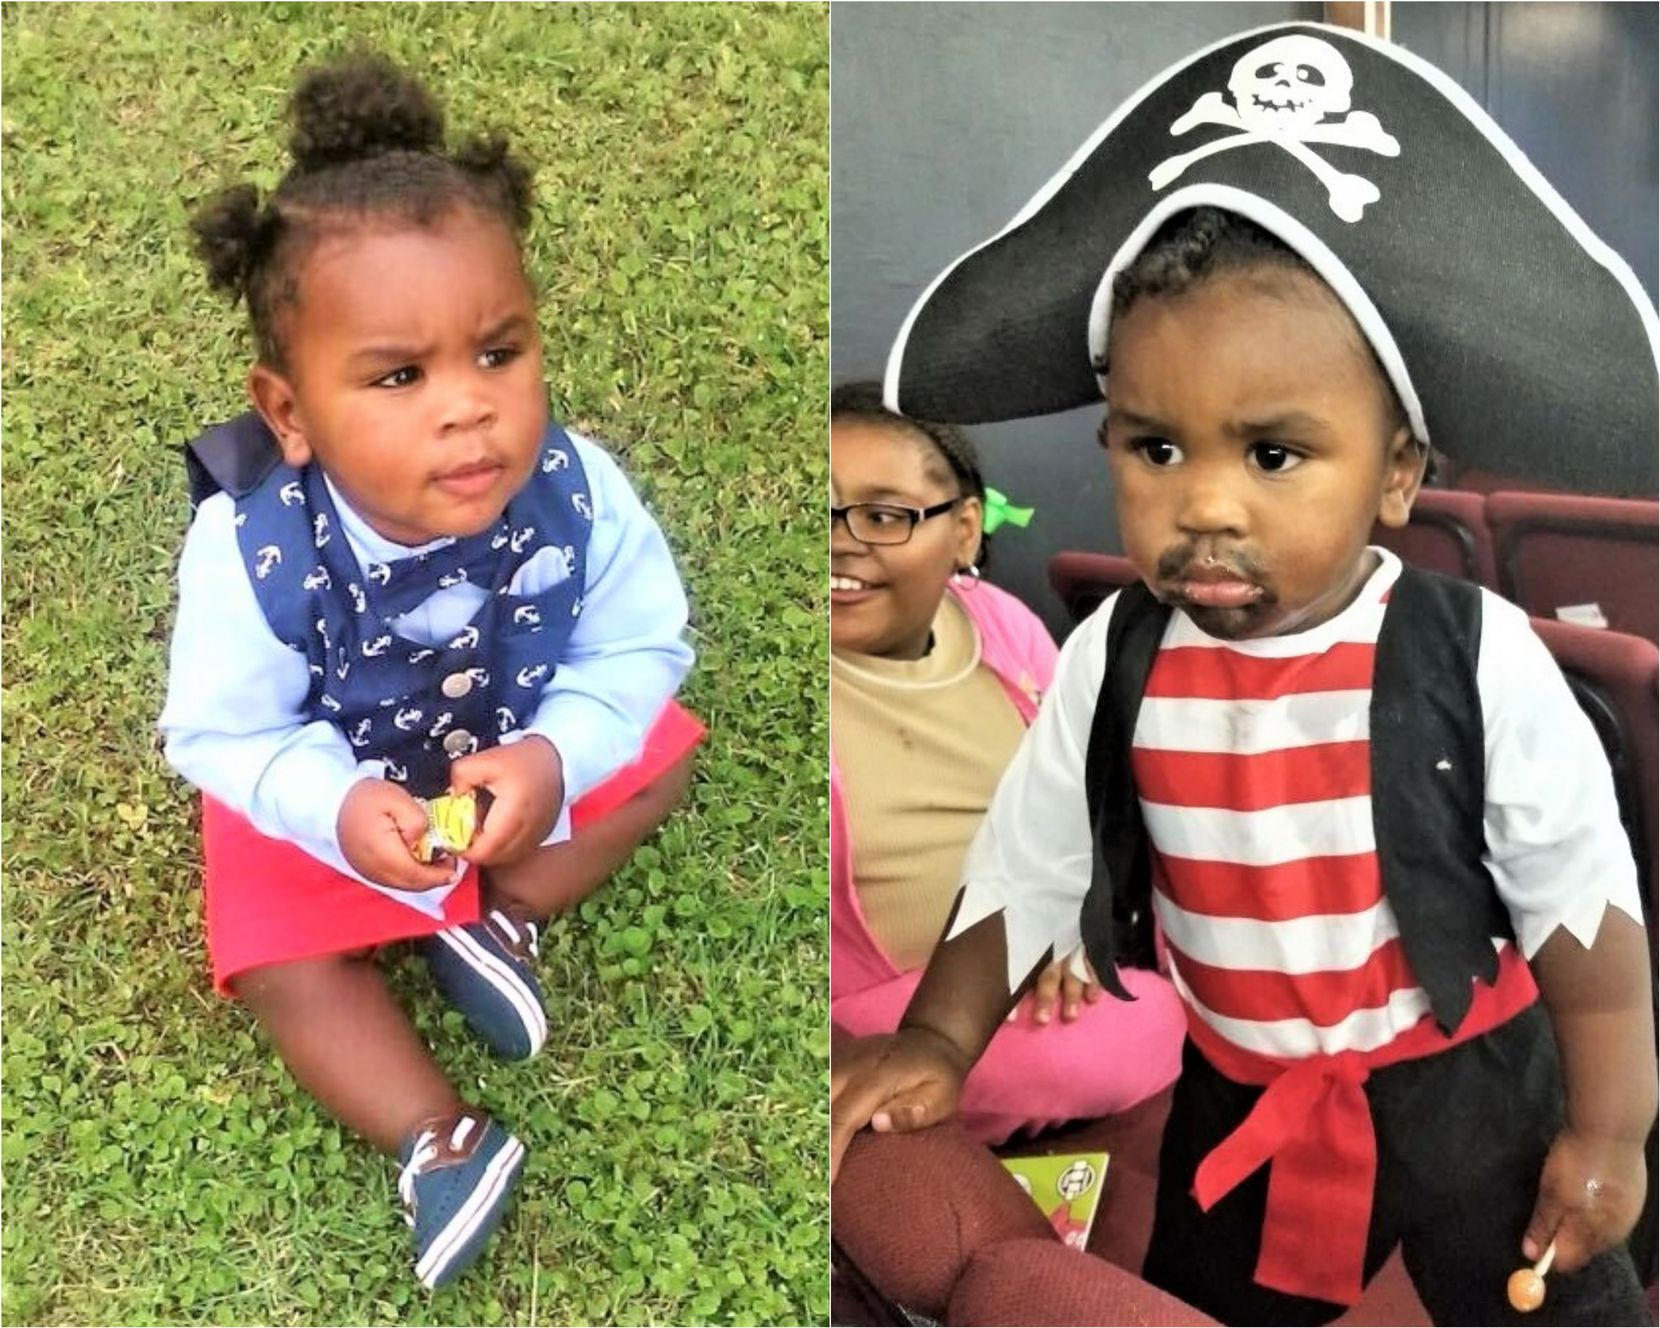 On April 10, 2020, Amari Boone's foster fathers drove him to Cook Children's Medical Center, where doctors determined he suffered from respiratory failure and a severe brain injury, according to court documents. He died two days later.